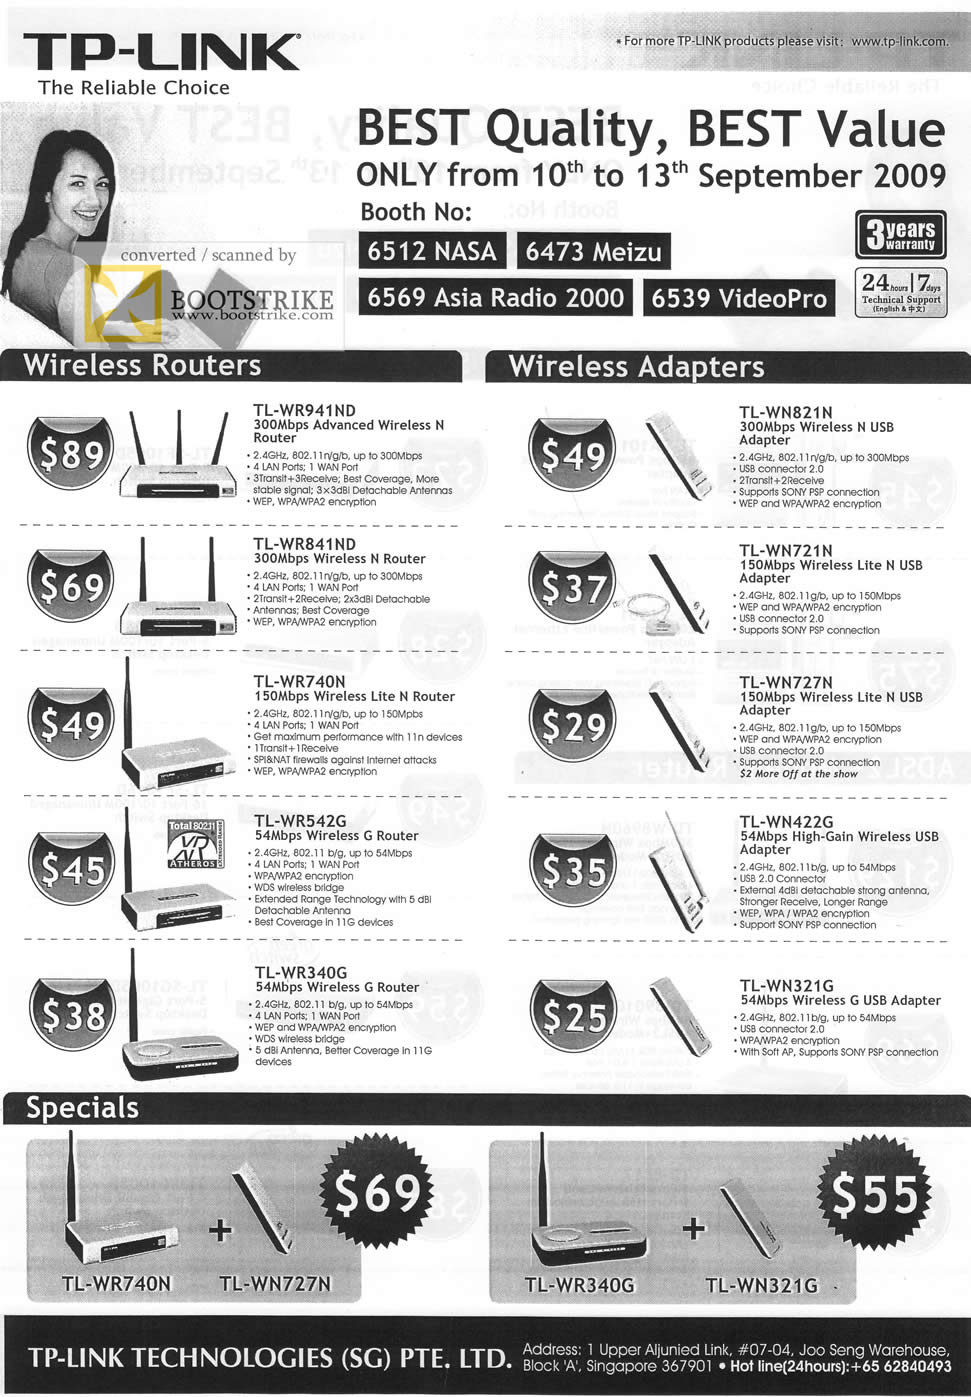 Comex 2009 price list image brochure of TP-Link Wireless Routers Adapters Specials